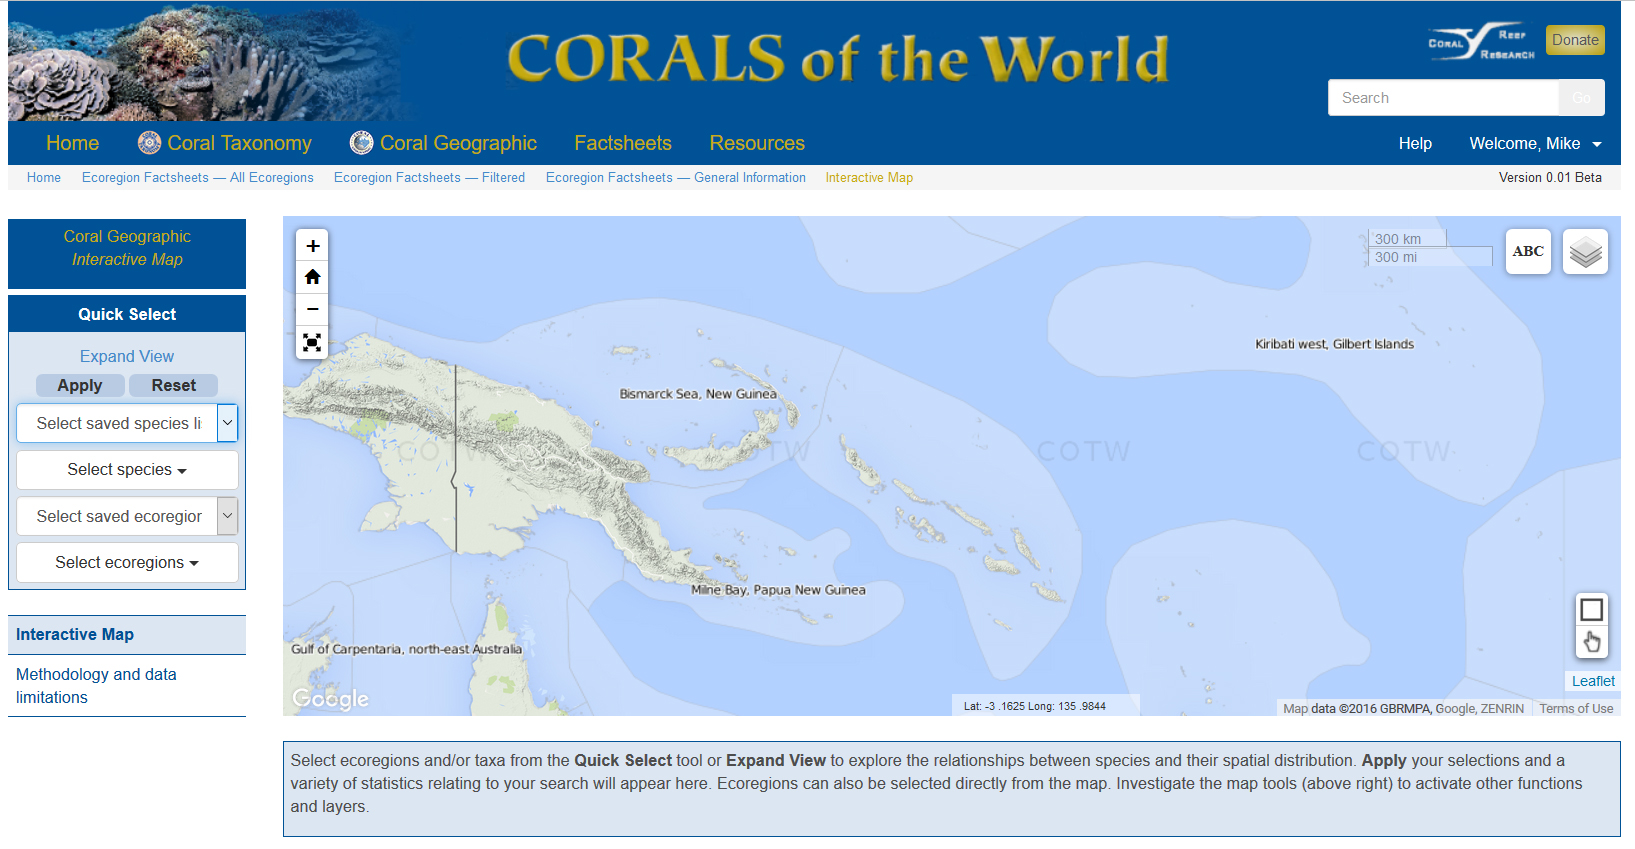 The site includes an interactive map of ecoregions which many aquarists will find useful